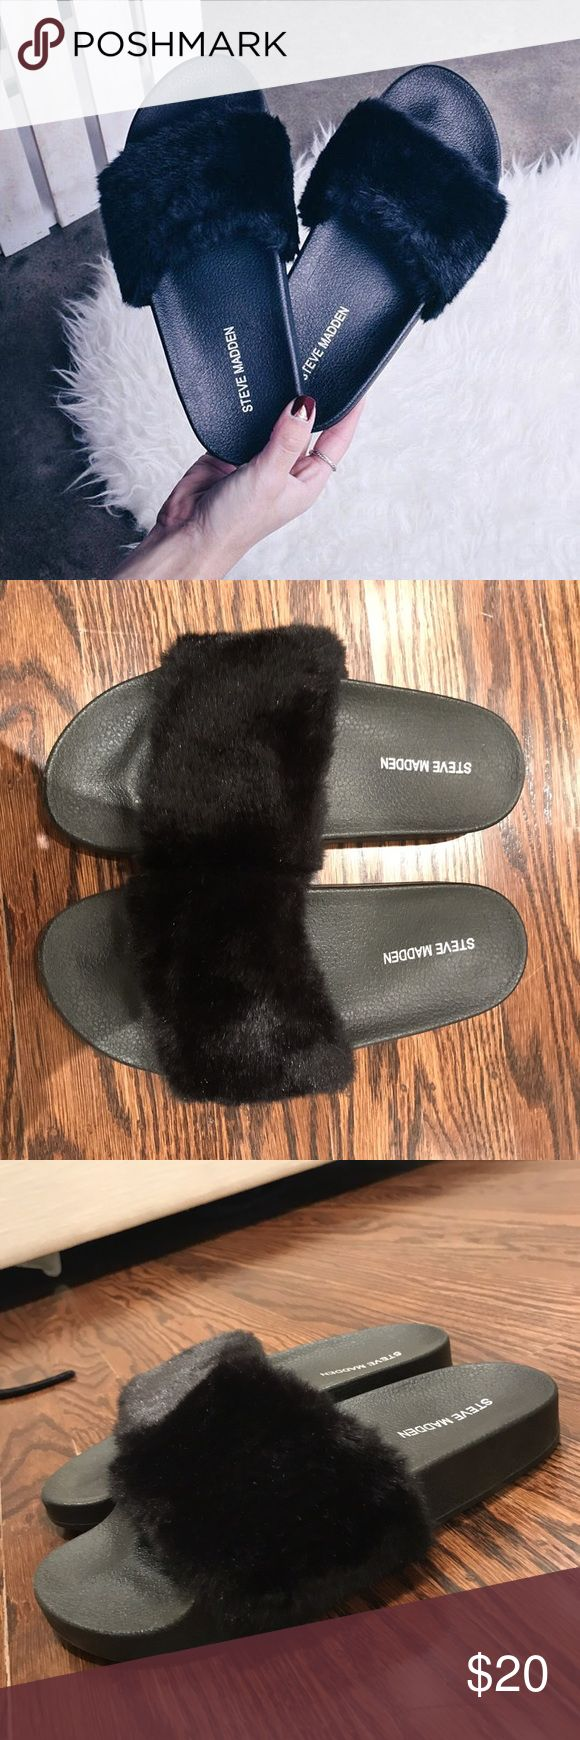 Steve Madden Furry Slides Steve Madden Furry Slides in Black! Super easy to slide on and go! Steve Madden Shoes Flats & Loafers